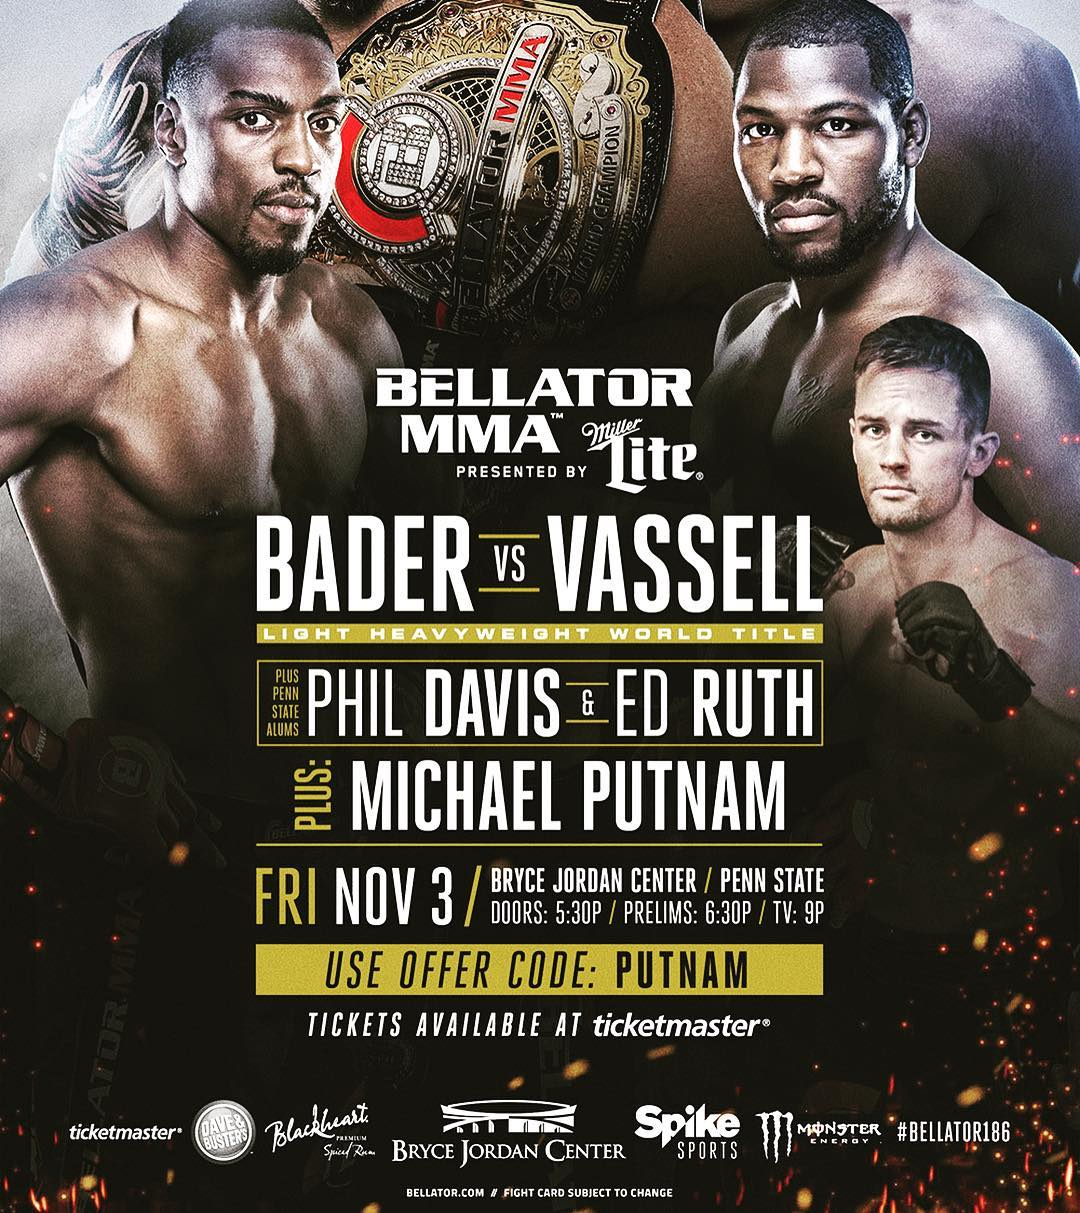 Local Whiskey would like to send a HUGE congratulations to @mputnam15 for making his @bellatormma debut at this upcoming Nov 3rd @jordancenter event!! Mike Putnam has been working @localwhiskeybar for several years, starting as a member of our security t